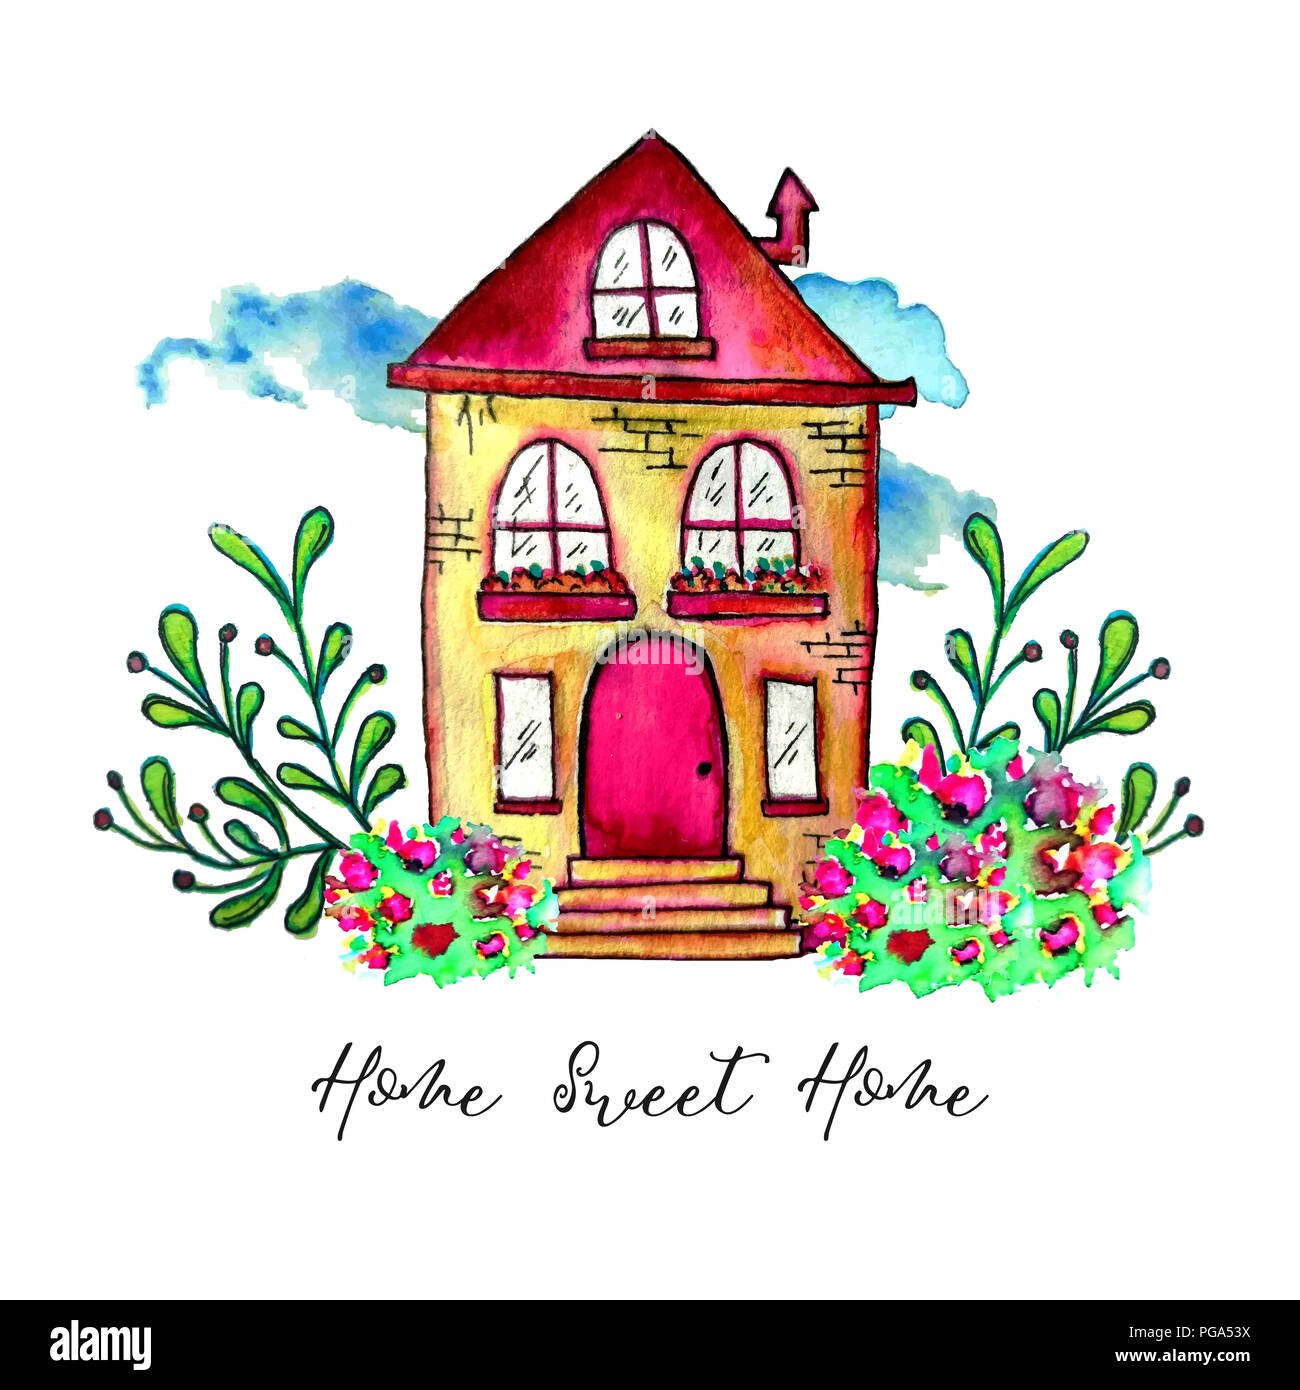 White Home Sweet Home Label Cute Watercolor Old Building With Branches And